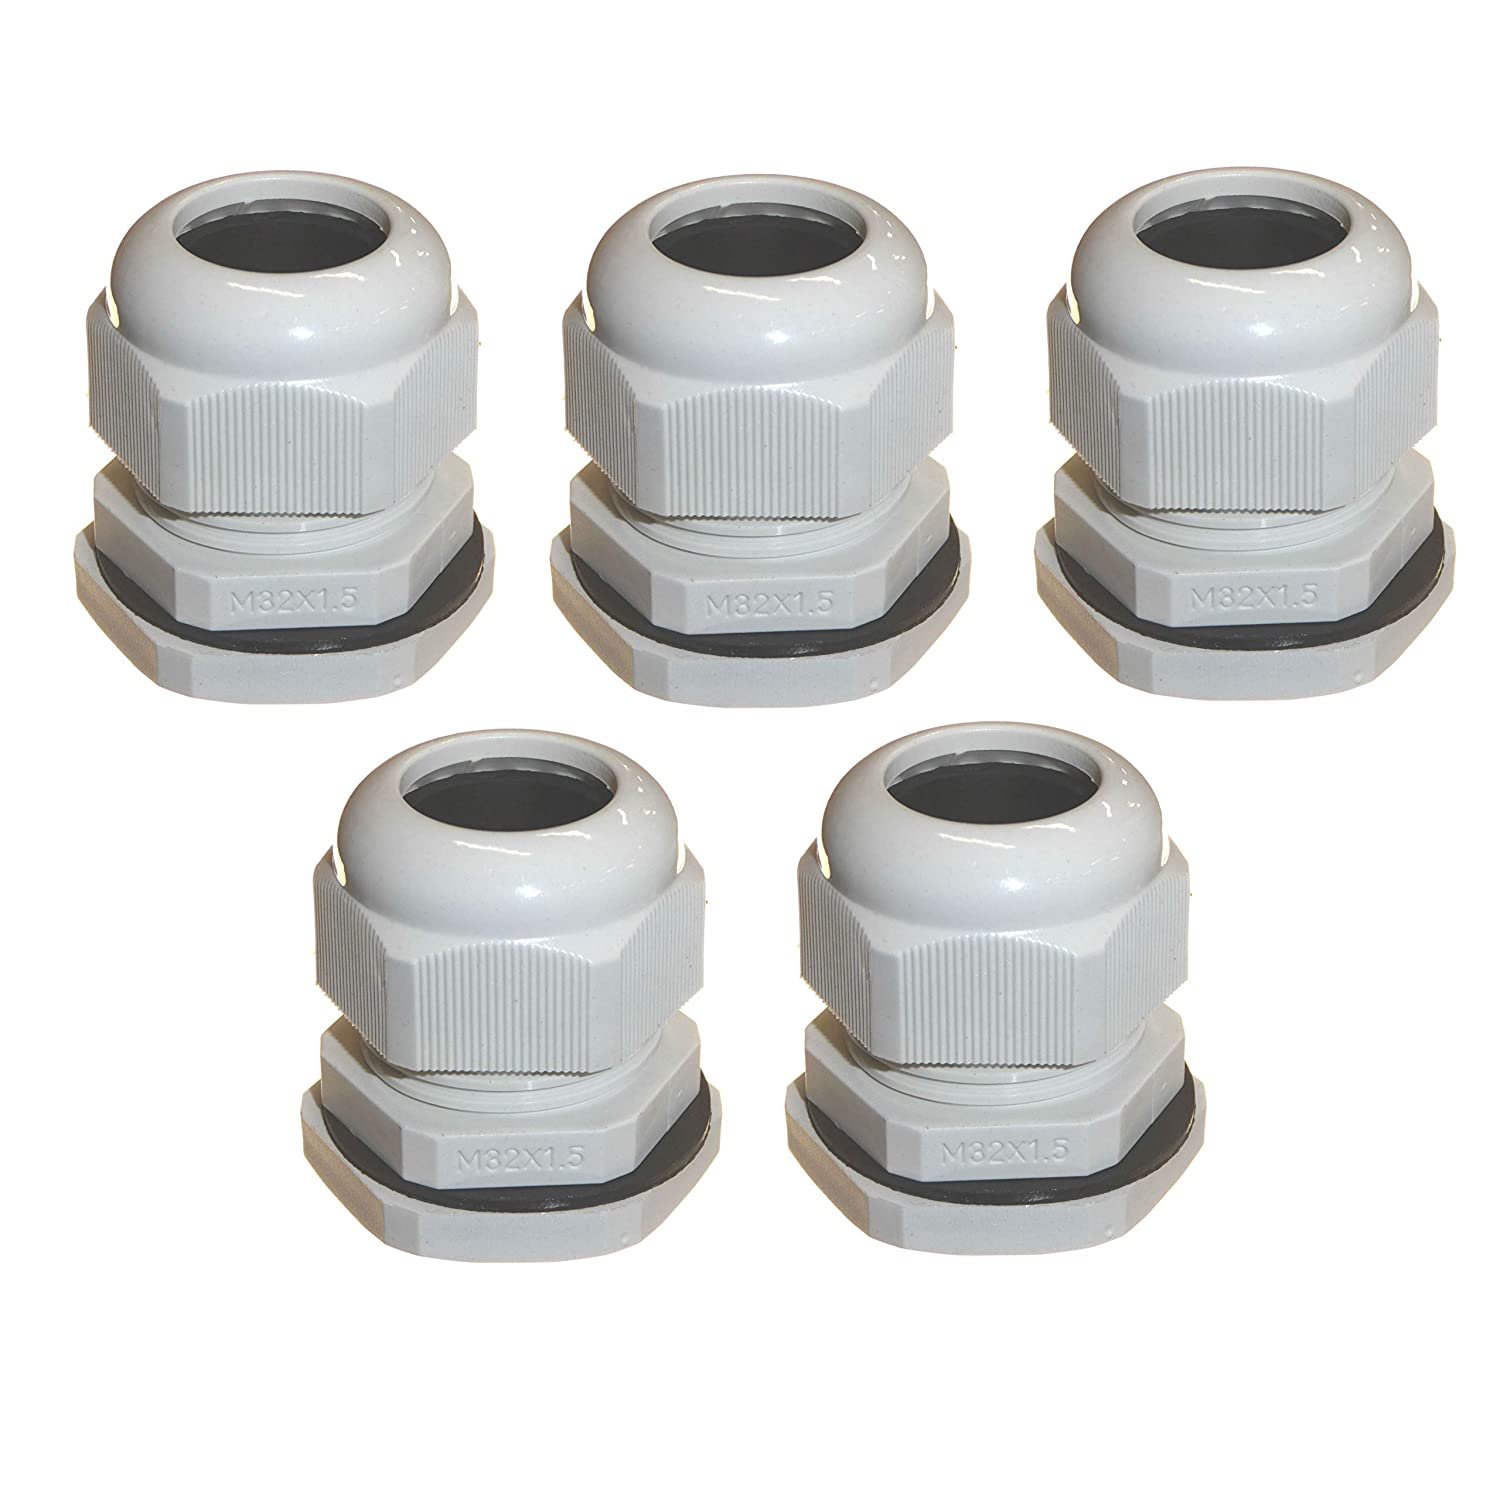 10 Pcs 20mm Bulk Compression Cable Gland JoInts Connector Stuffing Waterproof